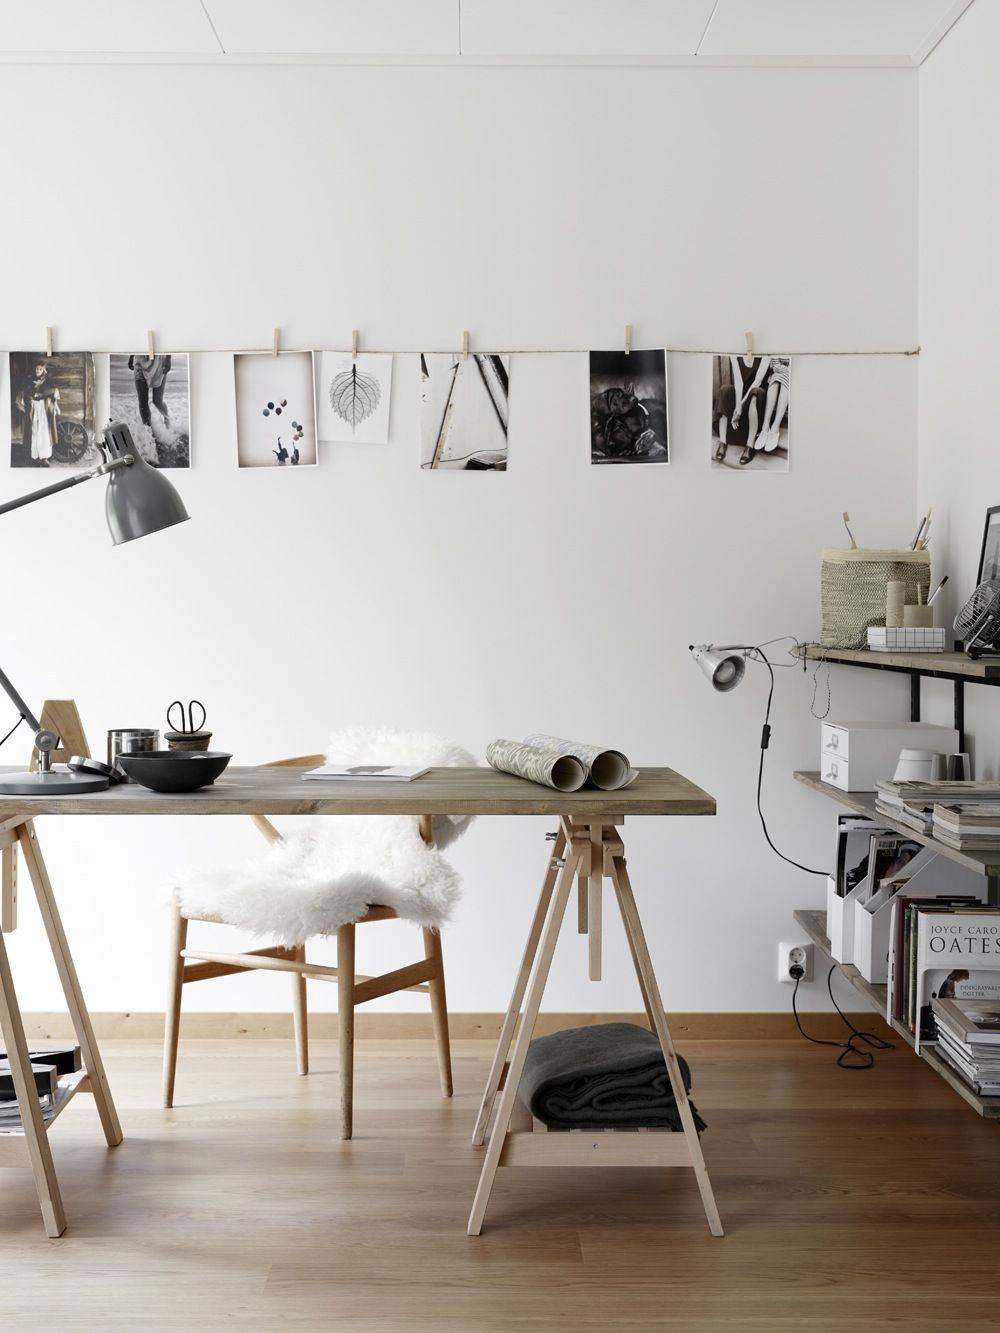 17 Unique Wall Art Display Ideas That Arent Another Gallery Wall